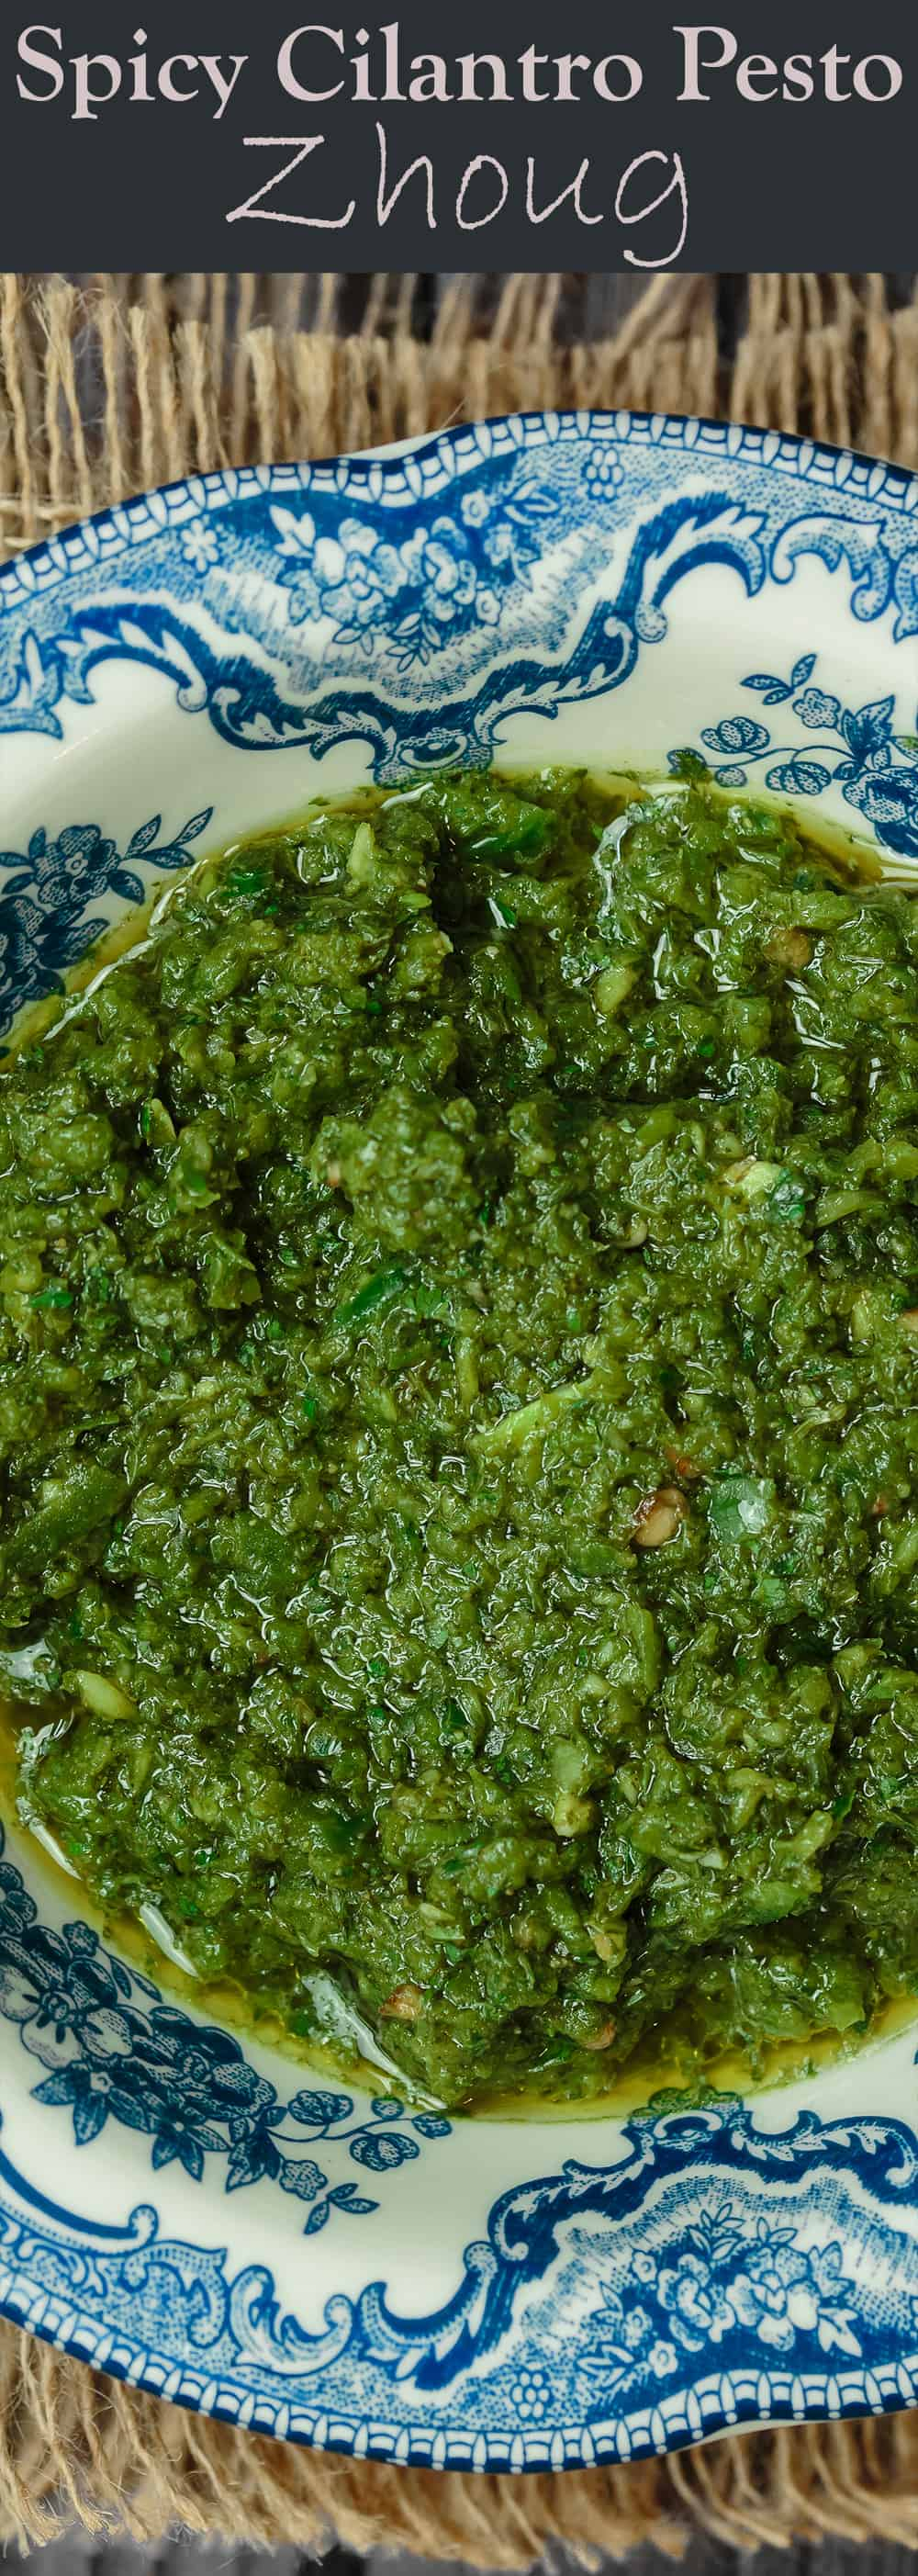 Zhoug: Spicy Cilantro Pesto | The Mediterranean Dish. A fragrant, spicy green sauce with fresh cilantro, parsley, Middle Eastern spices and olive oil. Think cilantro pesto with a nice kick. Great on all sorts of sandwiches, stirred into soup, or as a topping to your meat! See the recipe on TheMediterraneanDish.com